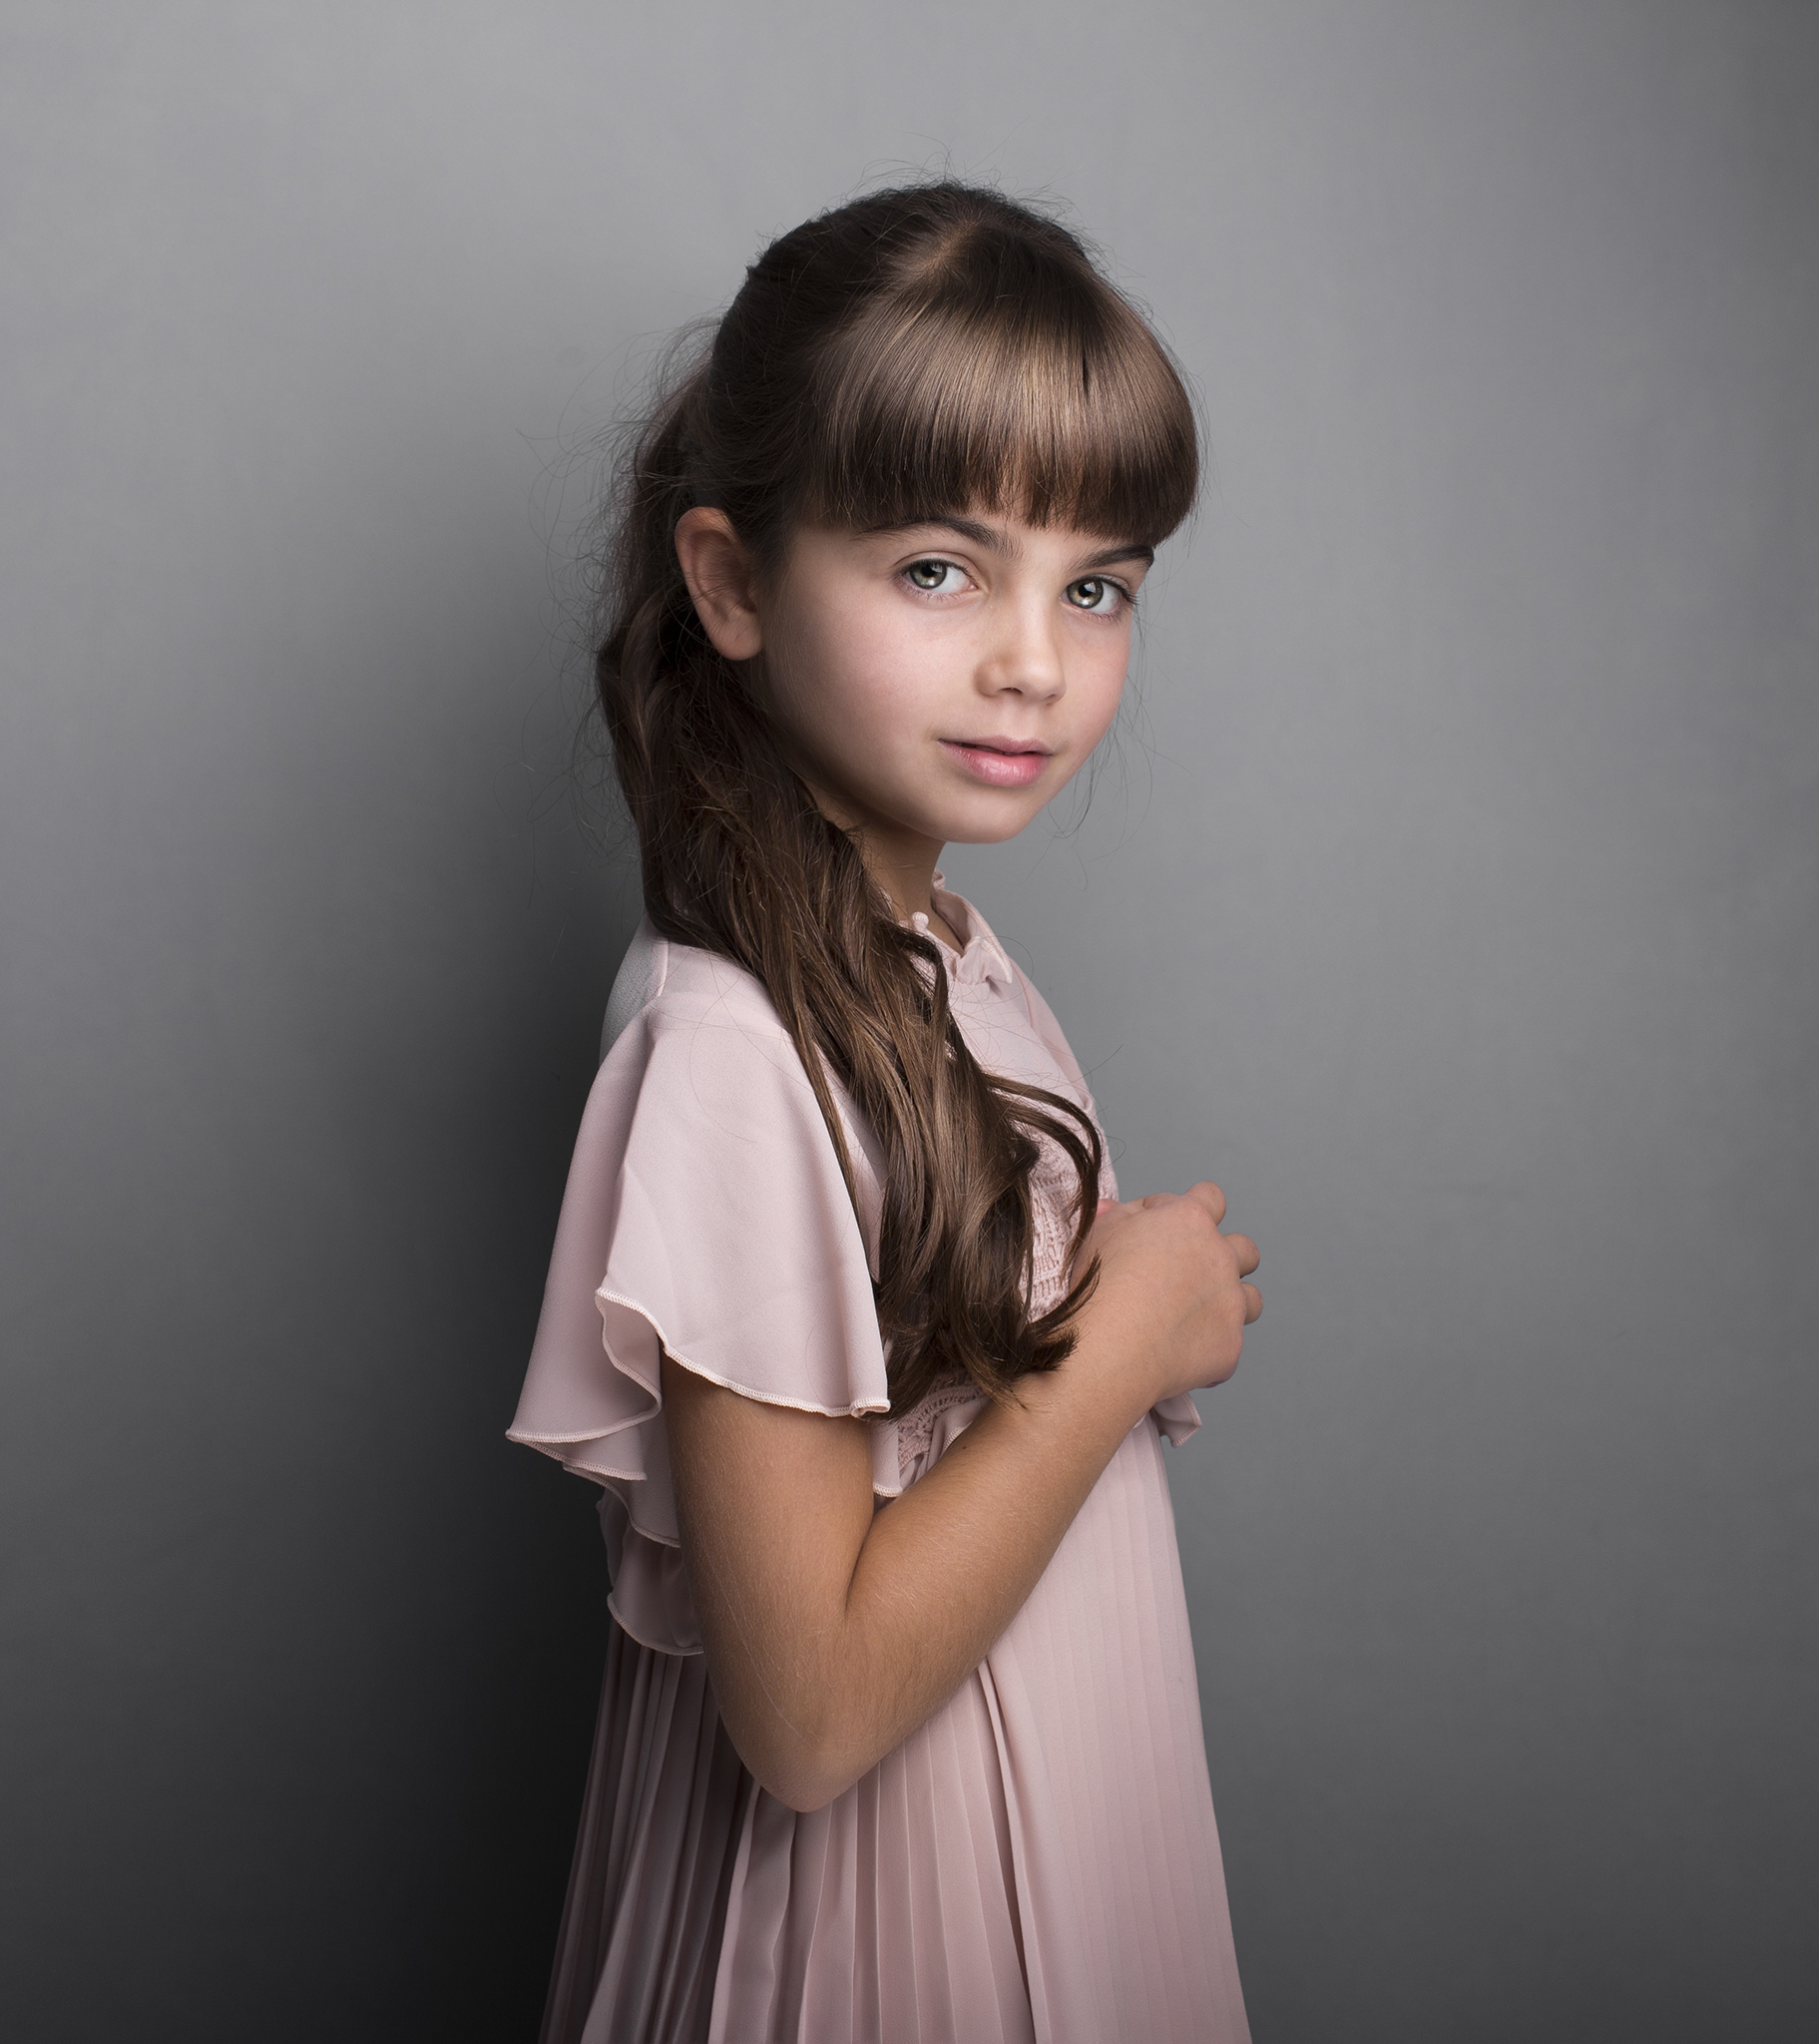 elizabethgphotography_fineart_kingslangley_london_hertfordshire_portrait_childrens_chloe_1.jpg